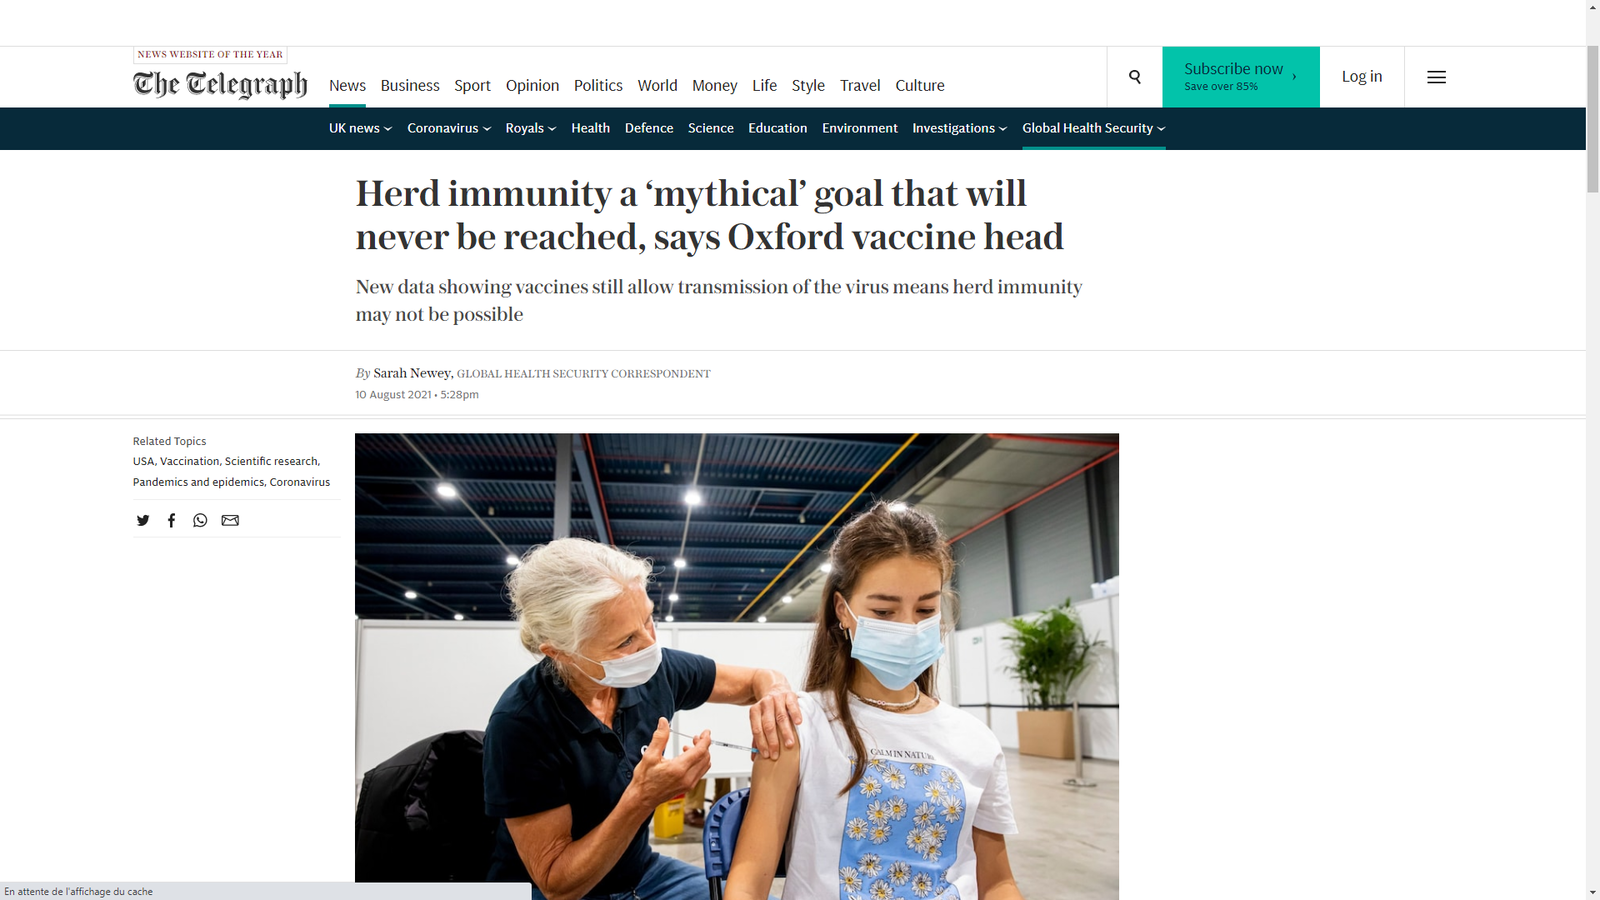 Source: https://www.telegraph.co.uk/global-health/science-and-disease/herd-immunity-mythical-goal-will-never-reached-says-oxford-vaccine/